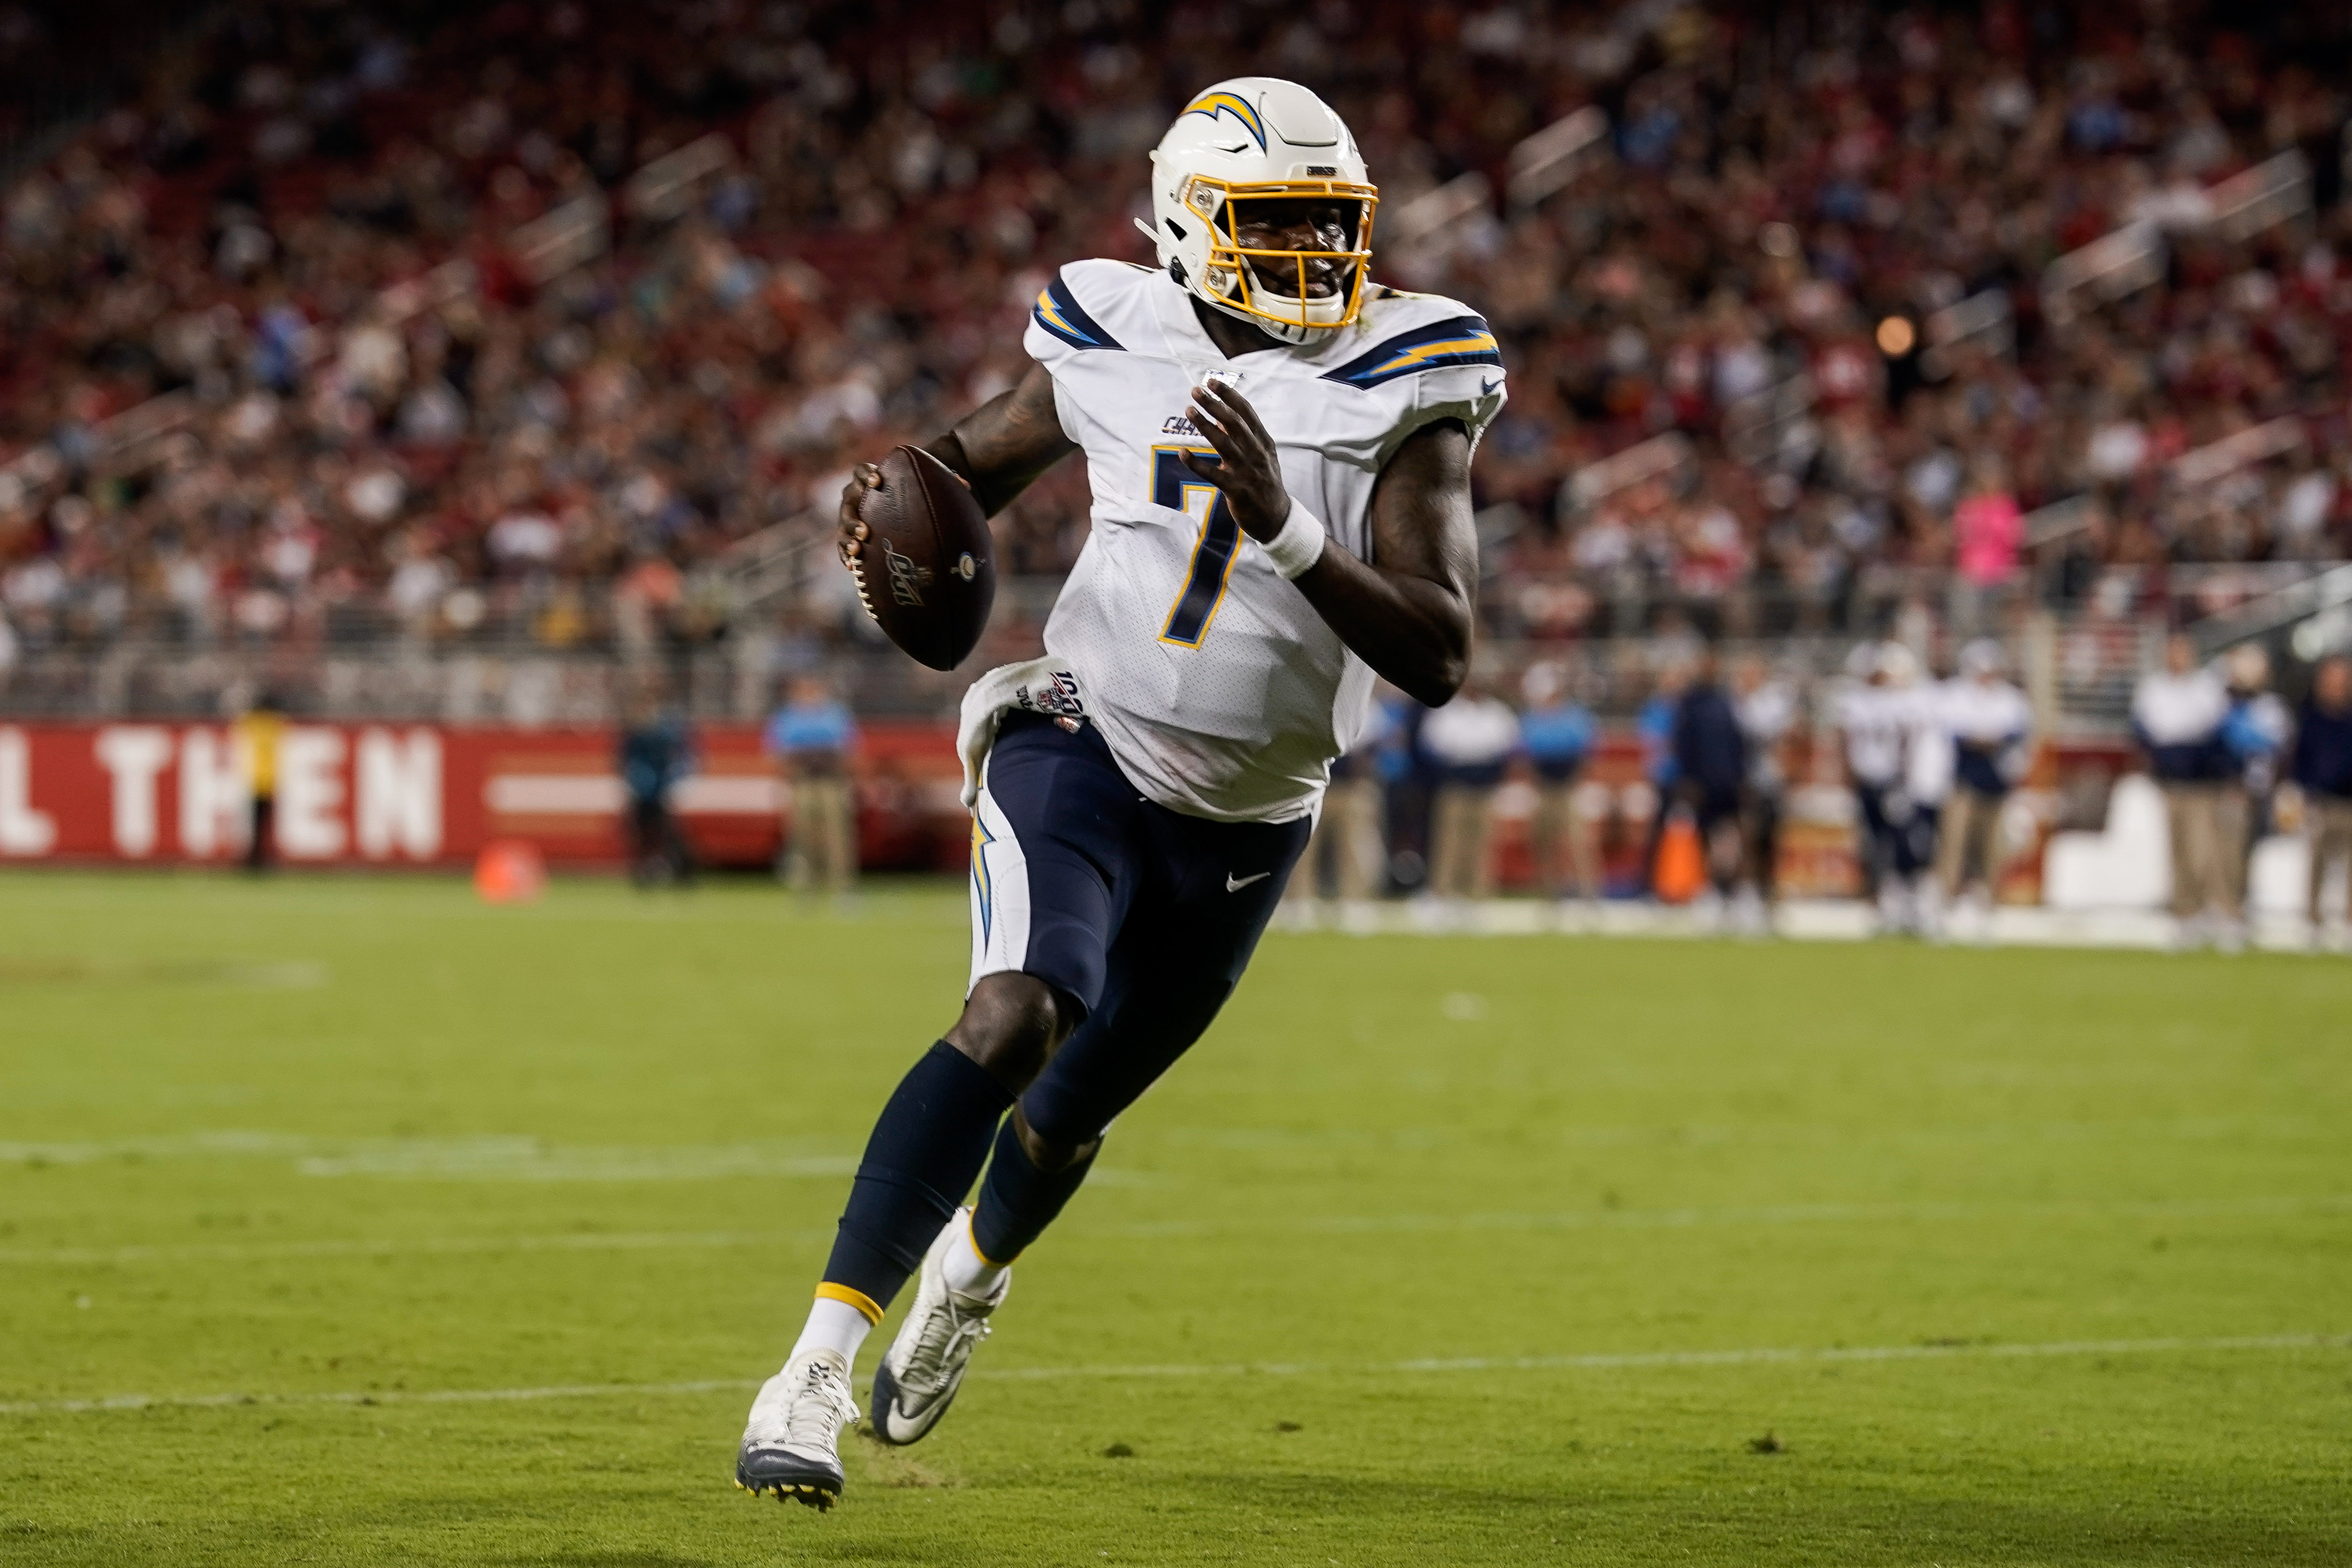 Los Angeles Chargers quarterback Cardale Jones runs for the end zone against the against the San Francisco 49ers during the second quarter at Levi's Stadium.